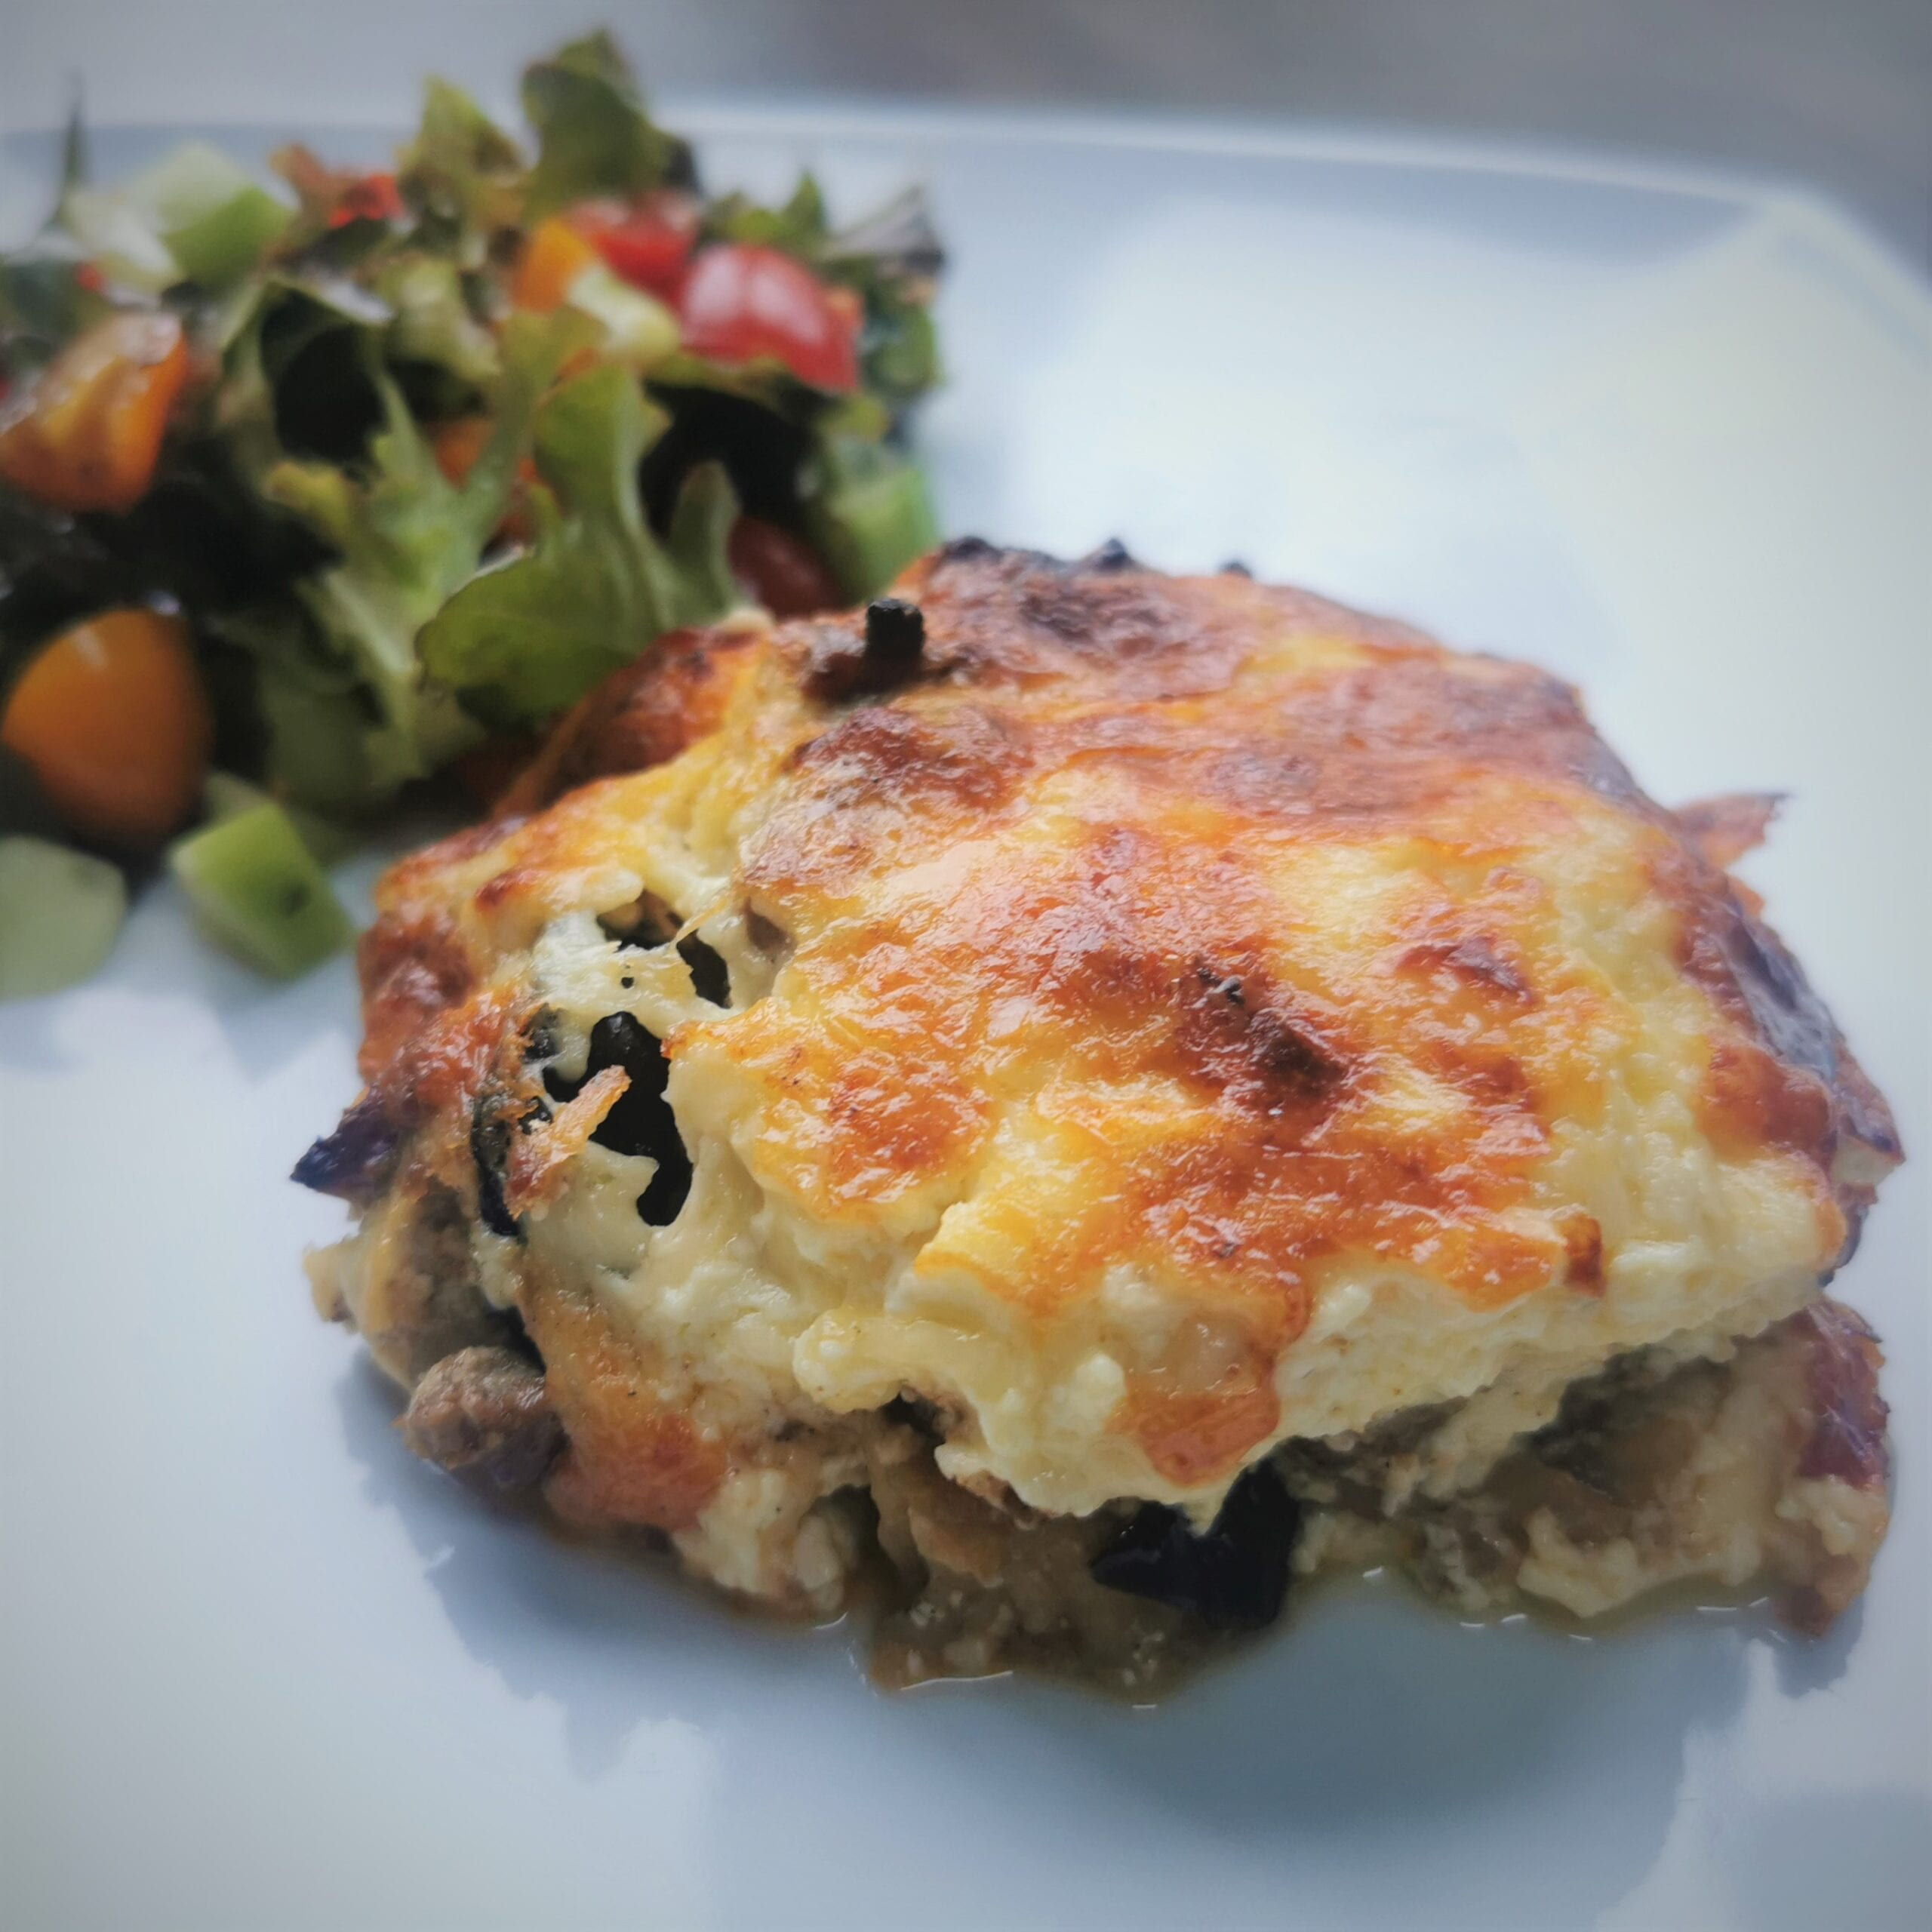 a portion of moussaka with salad in the background